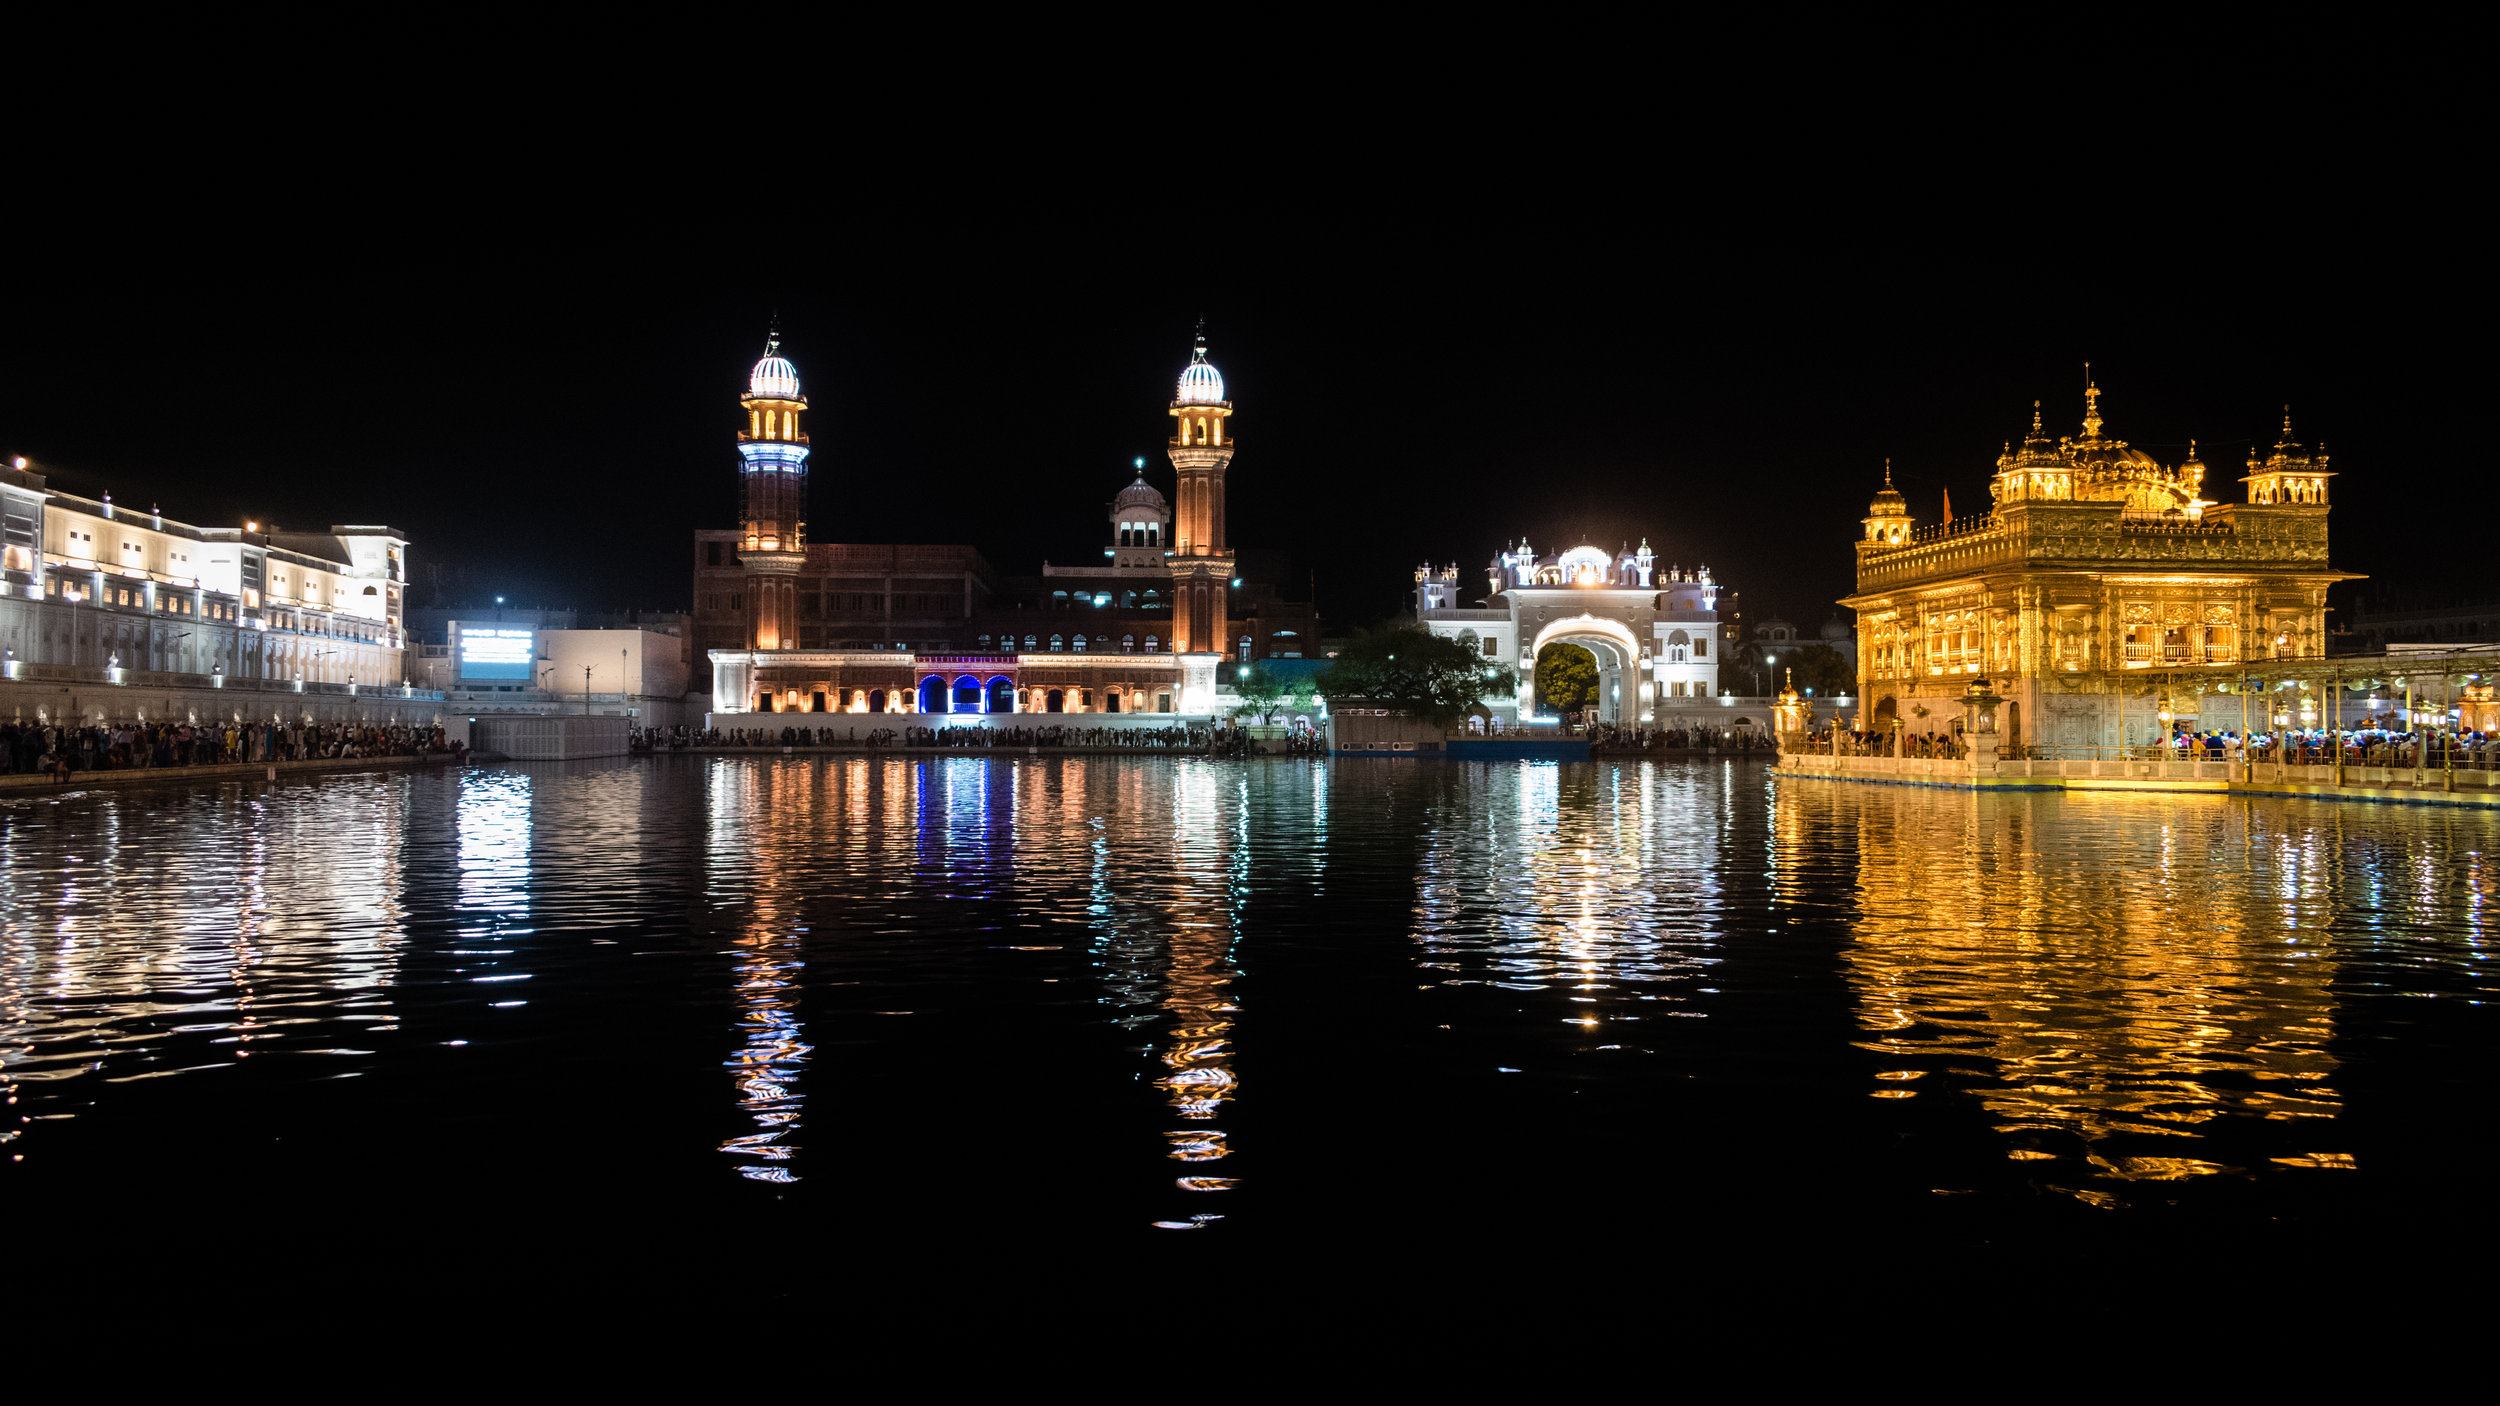 The Golden Temple At Night, India